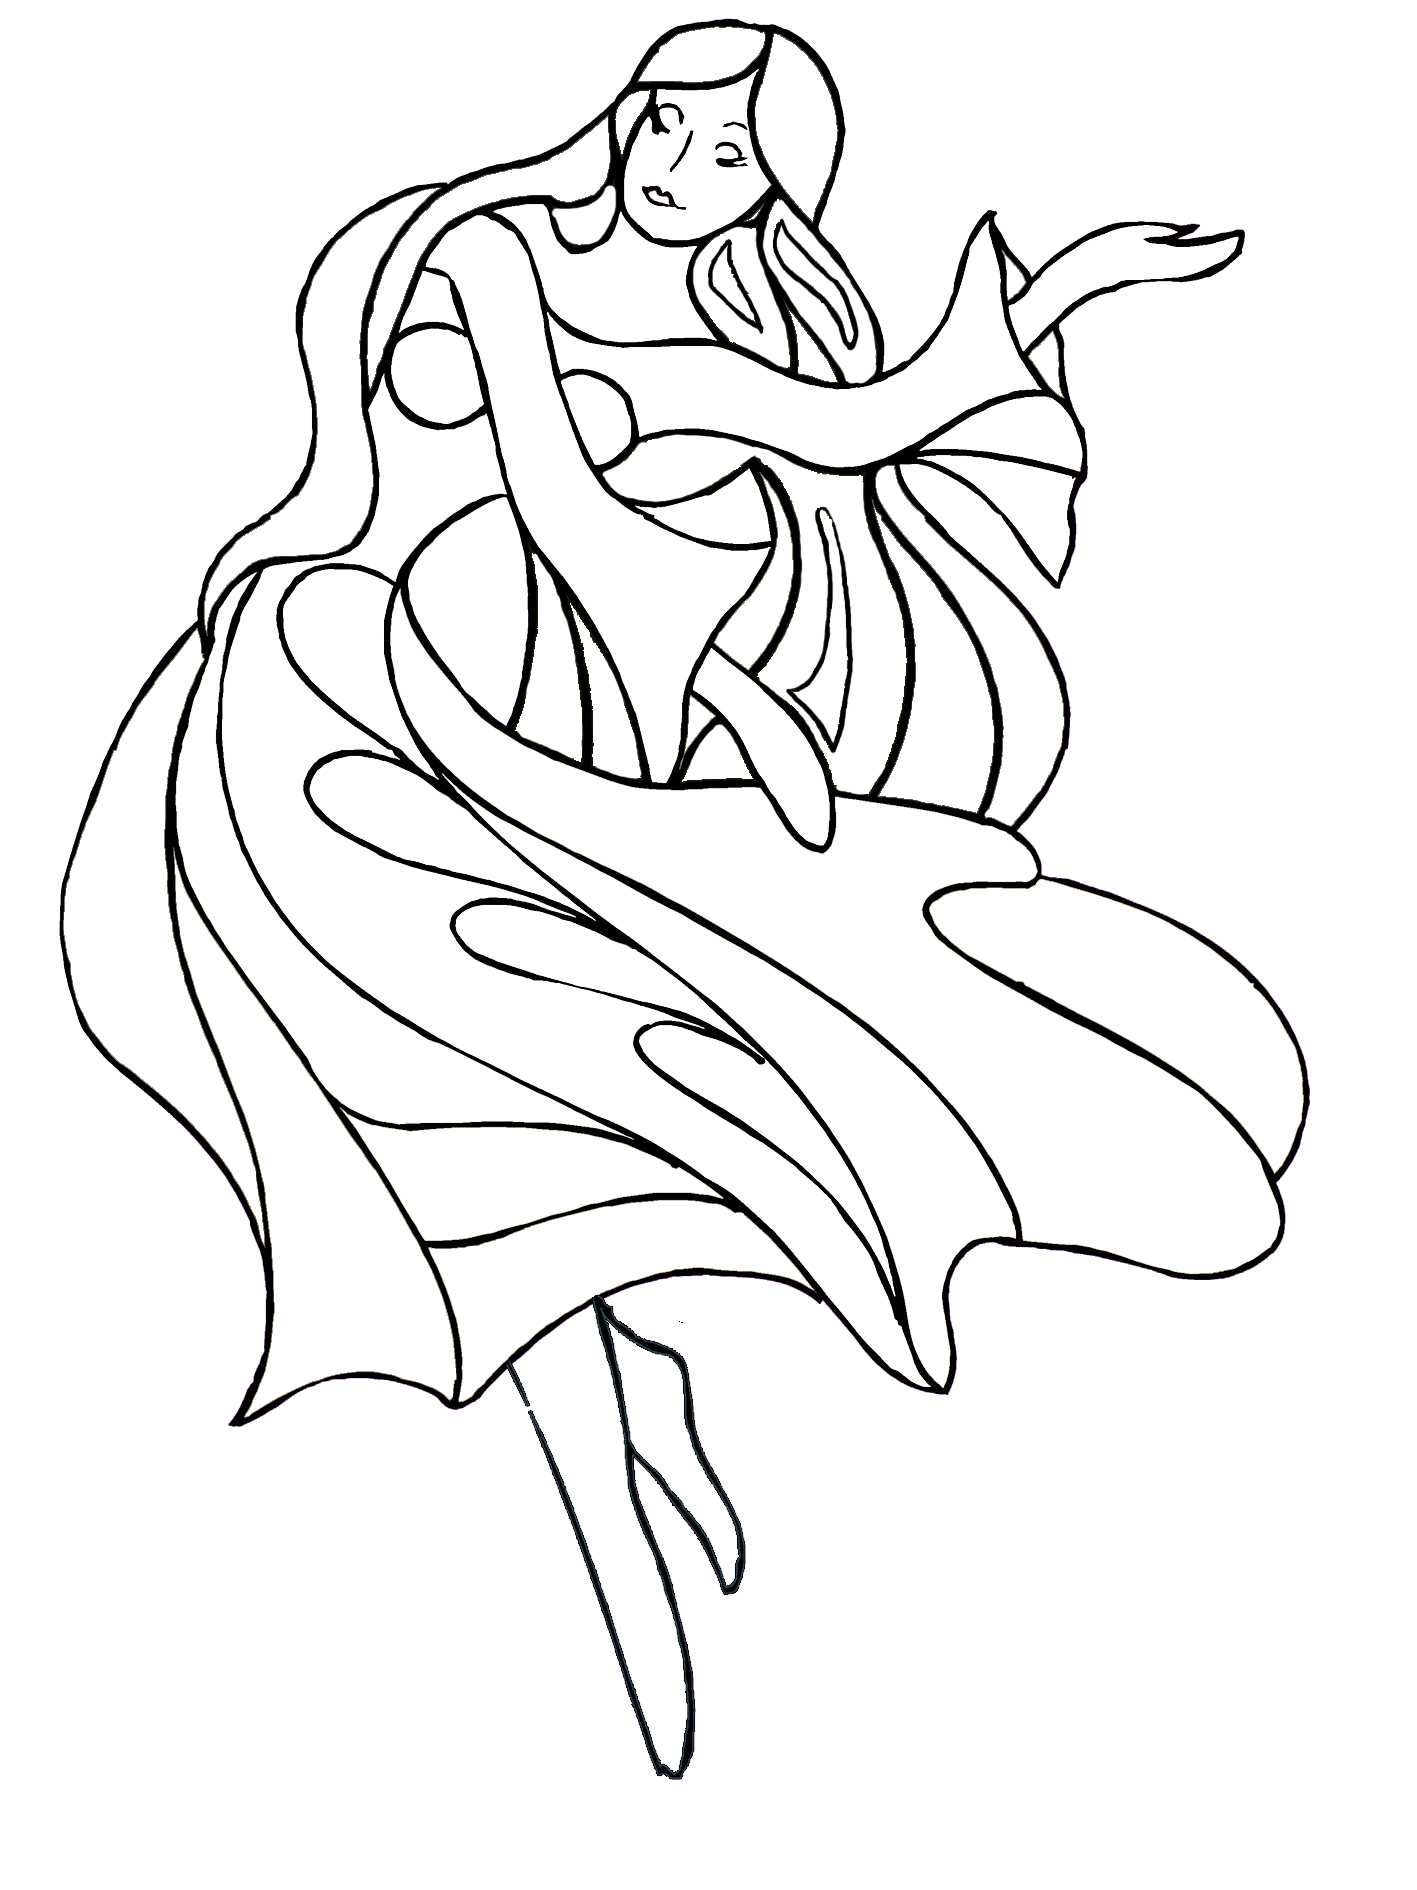 young girl dancing coloring sheet